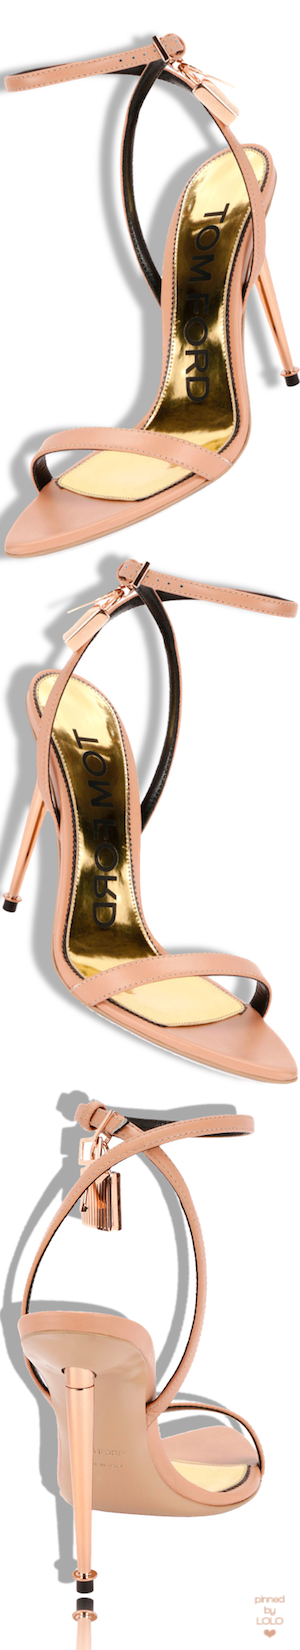 ea780124086 TOM FORD Lock Ankle-Wrap Soft Calf Leather Sandal  tomford ...